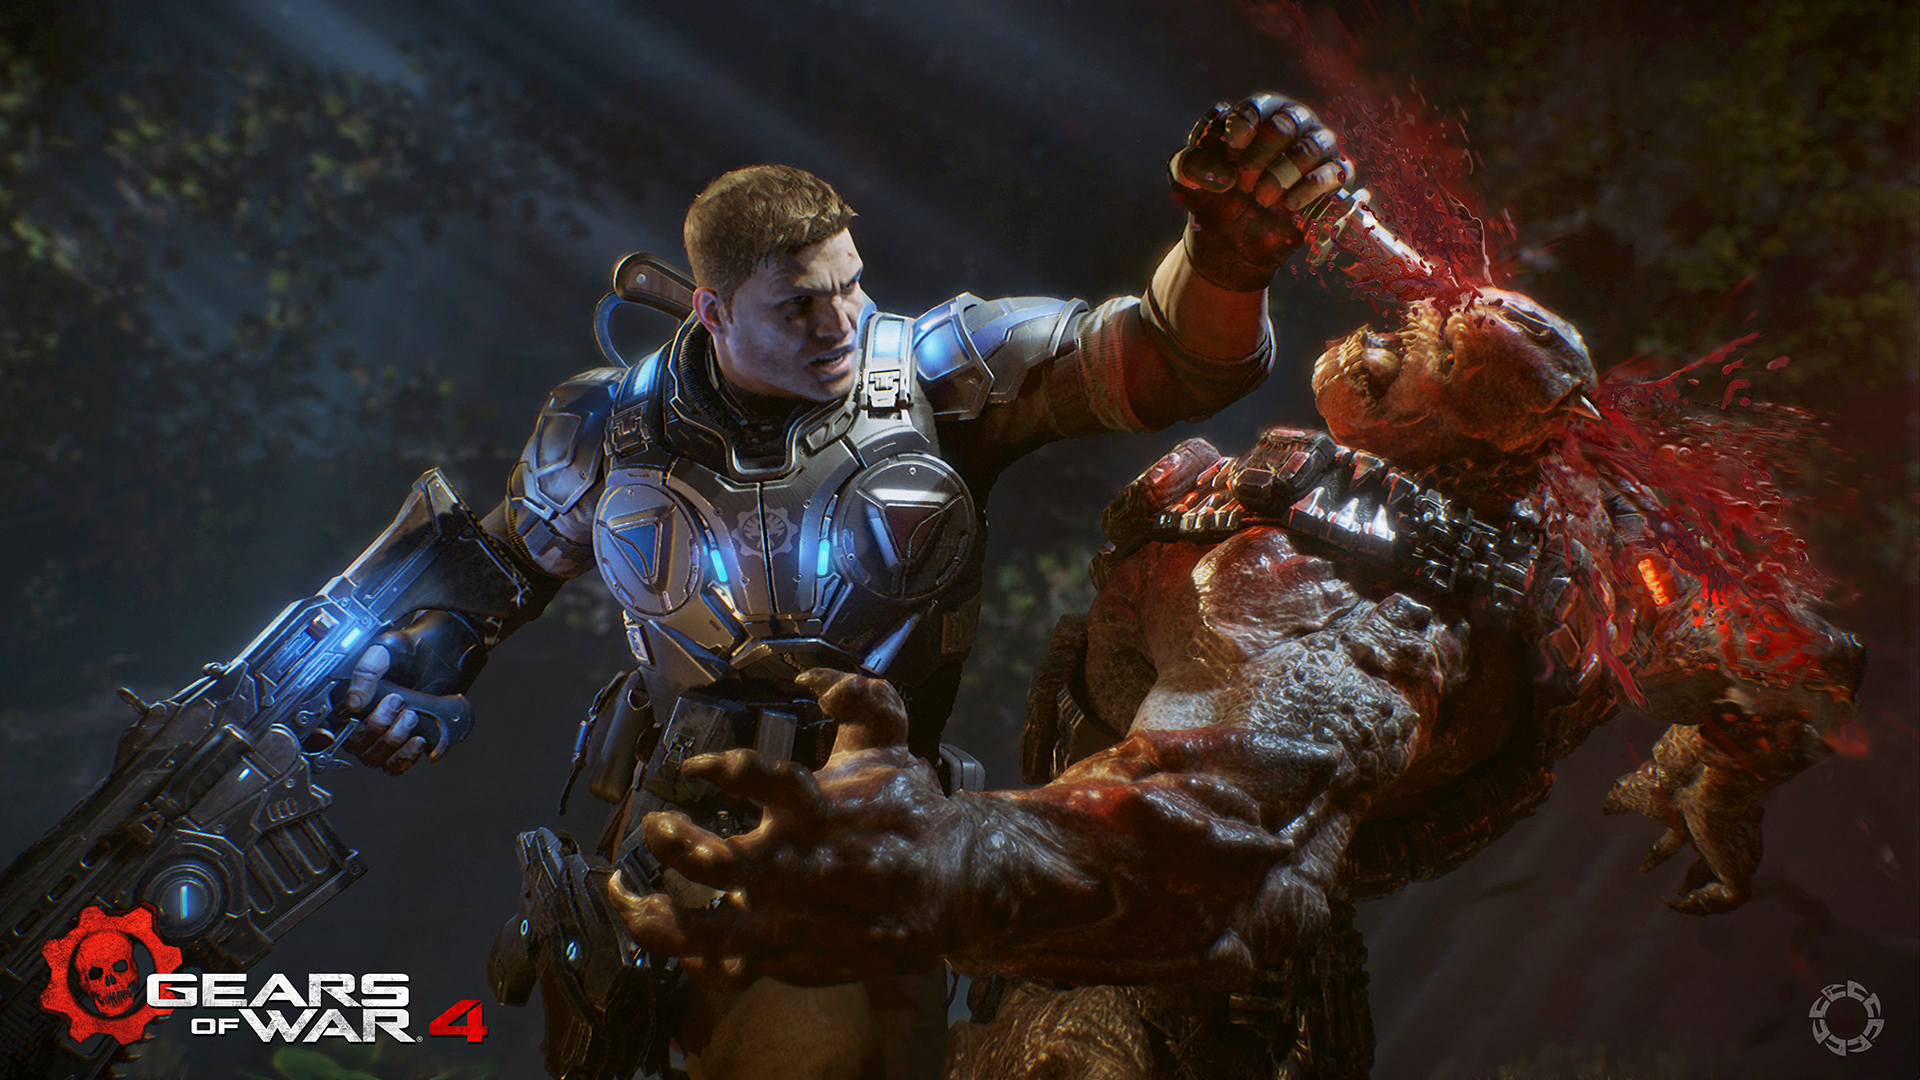 gears of war 4 wallpaper | gears of war - official site | games